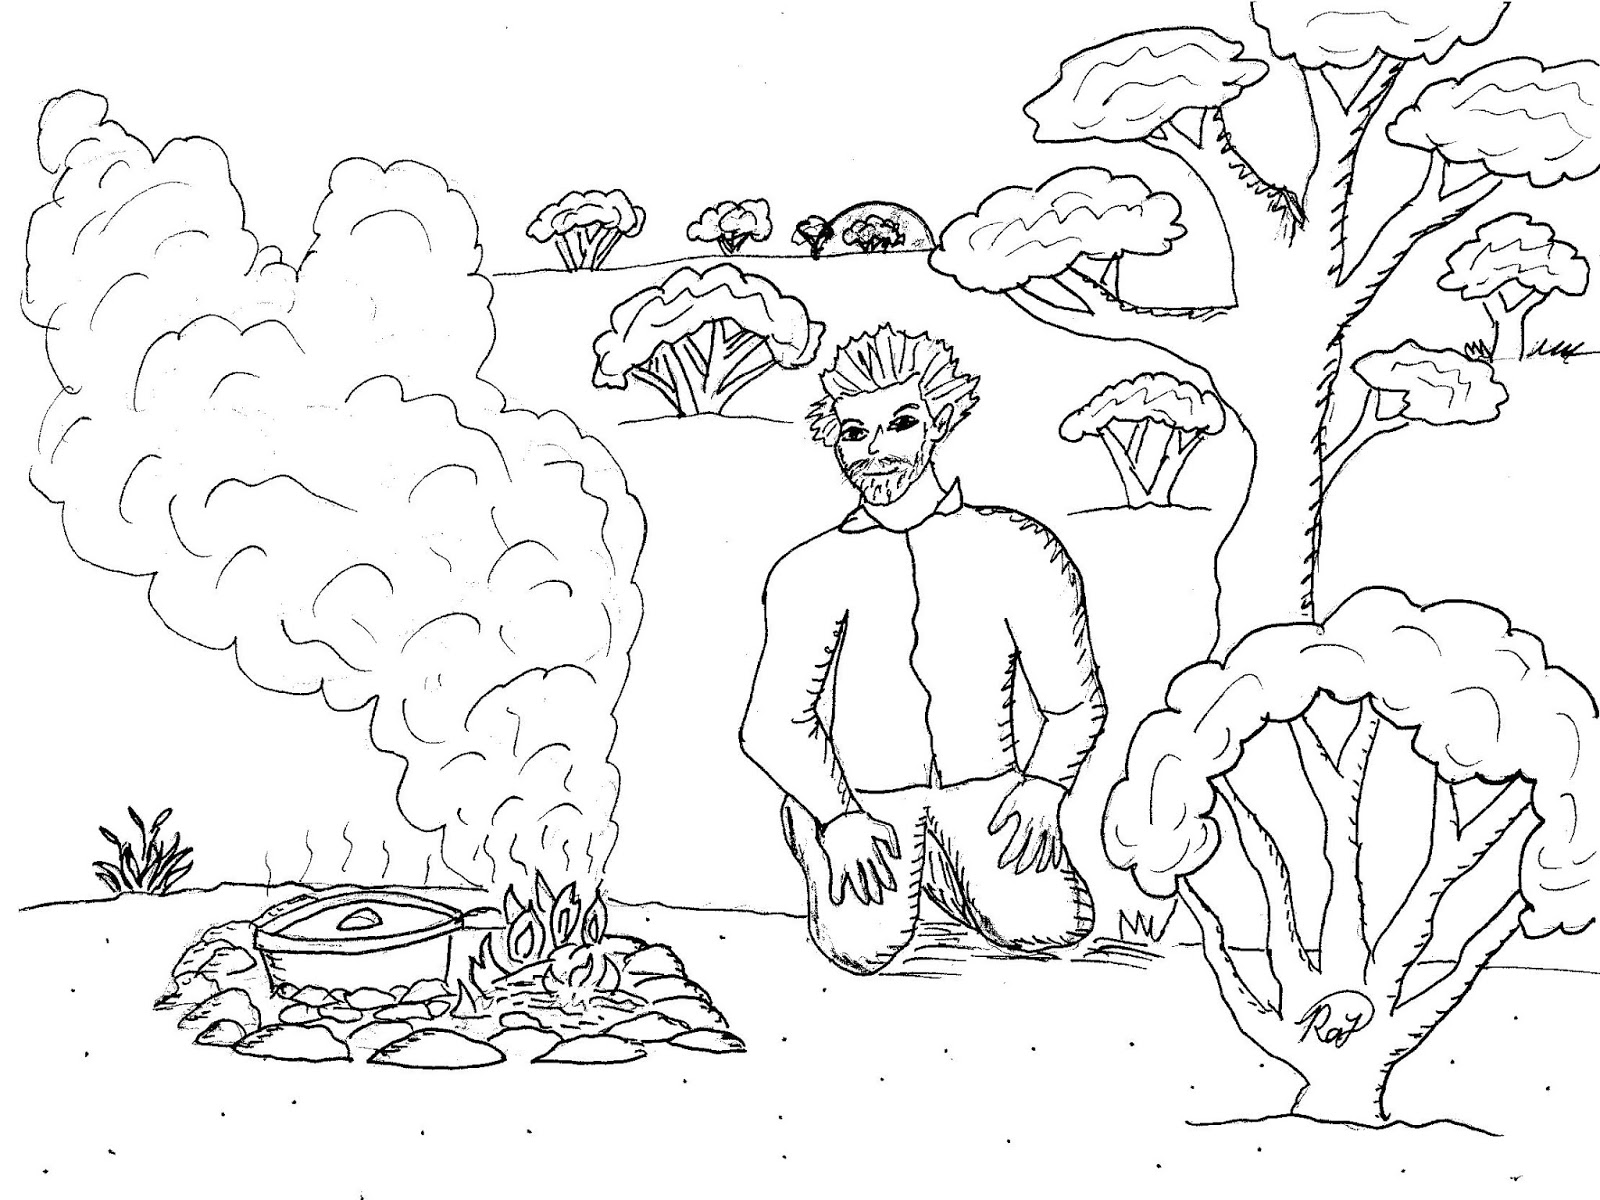 Robin's Great Coloring Pages: People of Earth Sanctuary